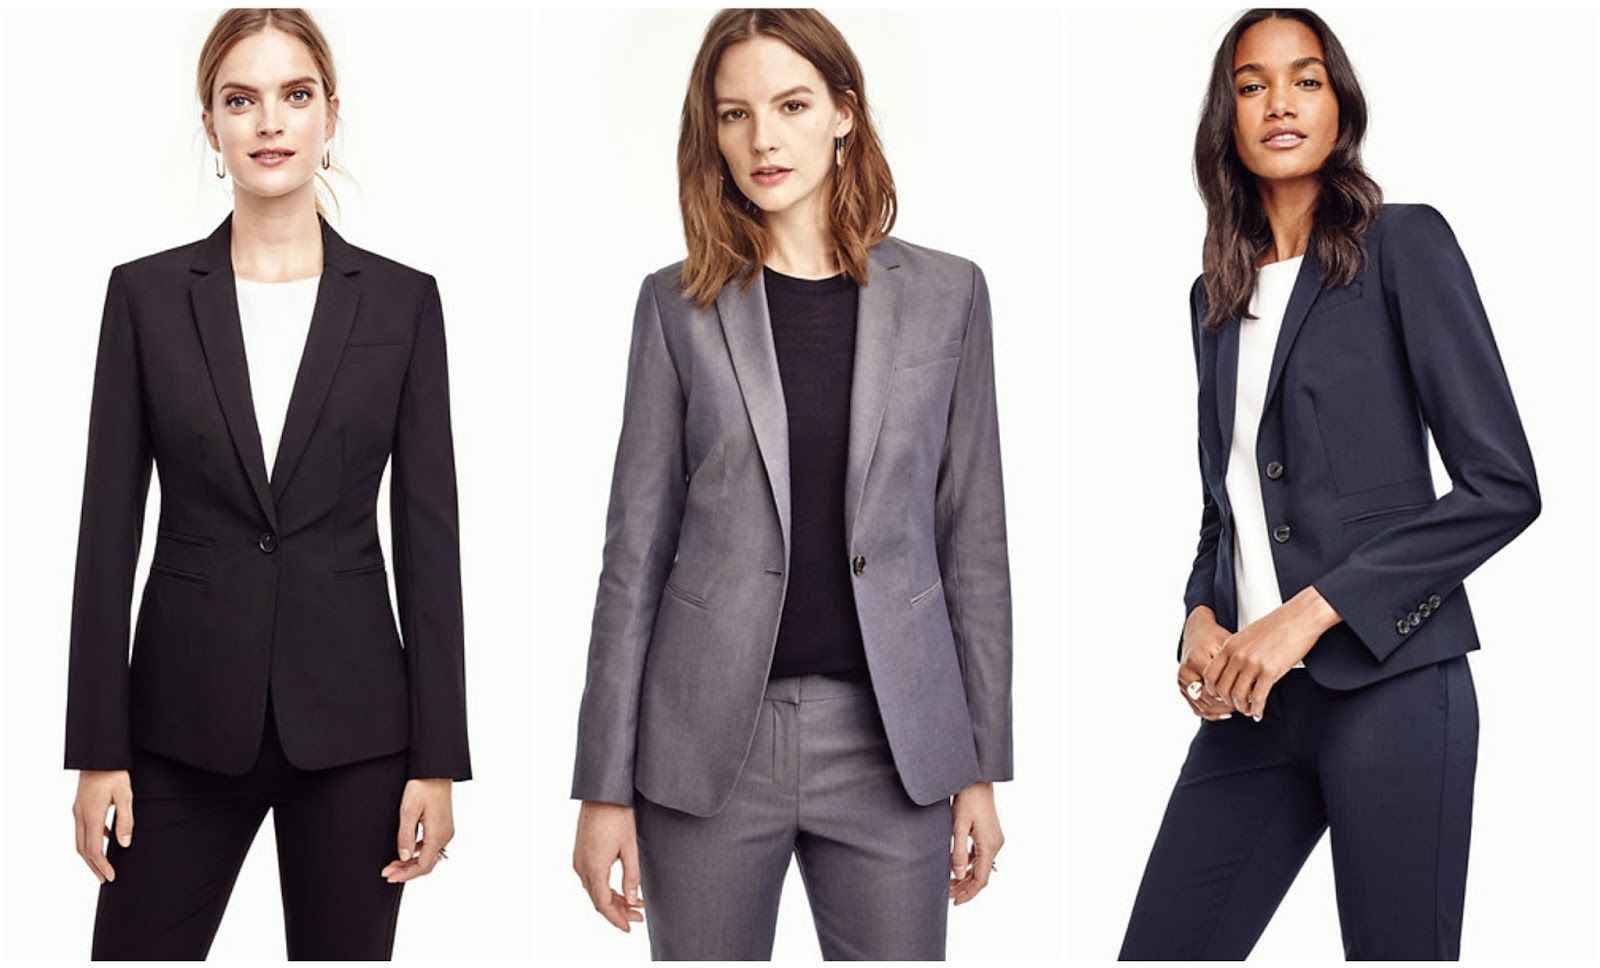 womens suits for residency interview, what do you wear to